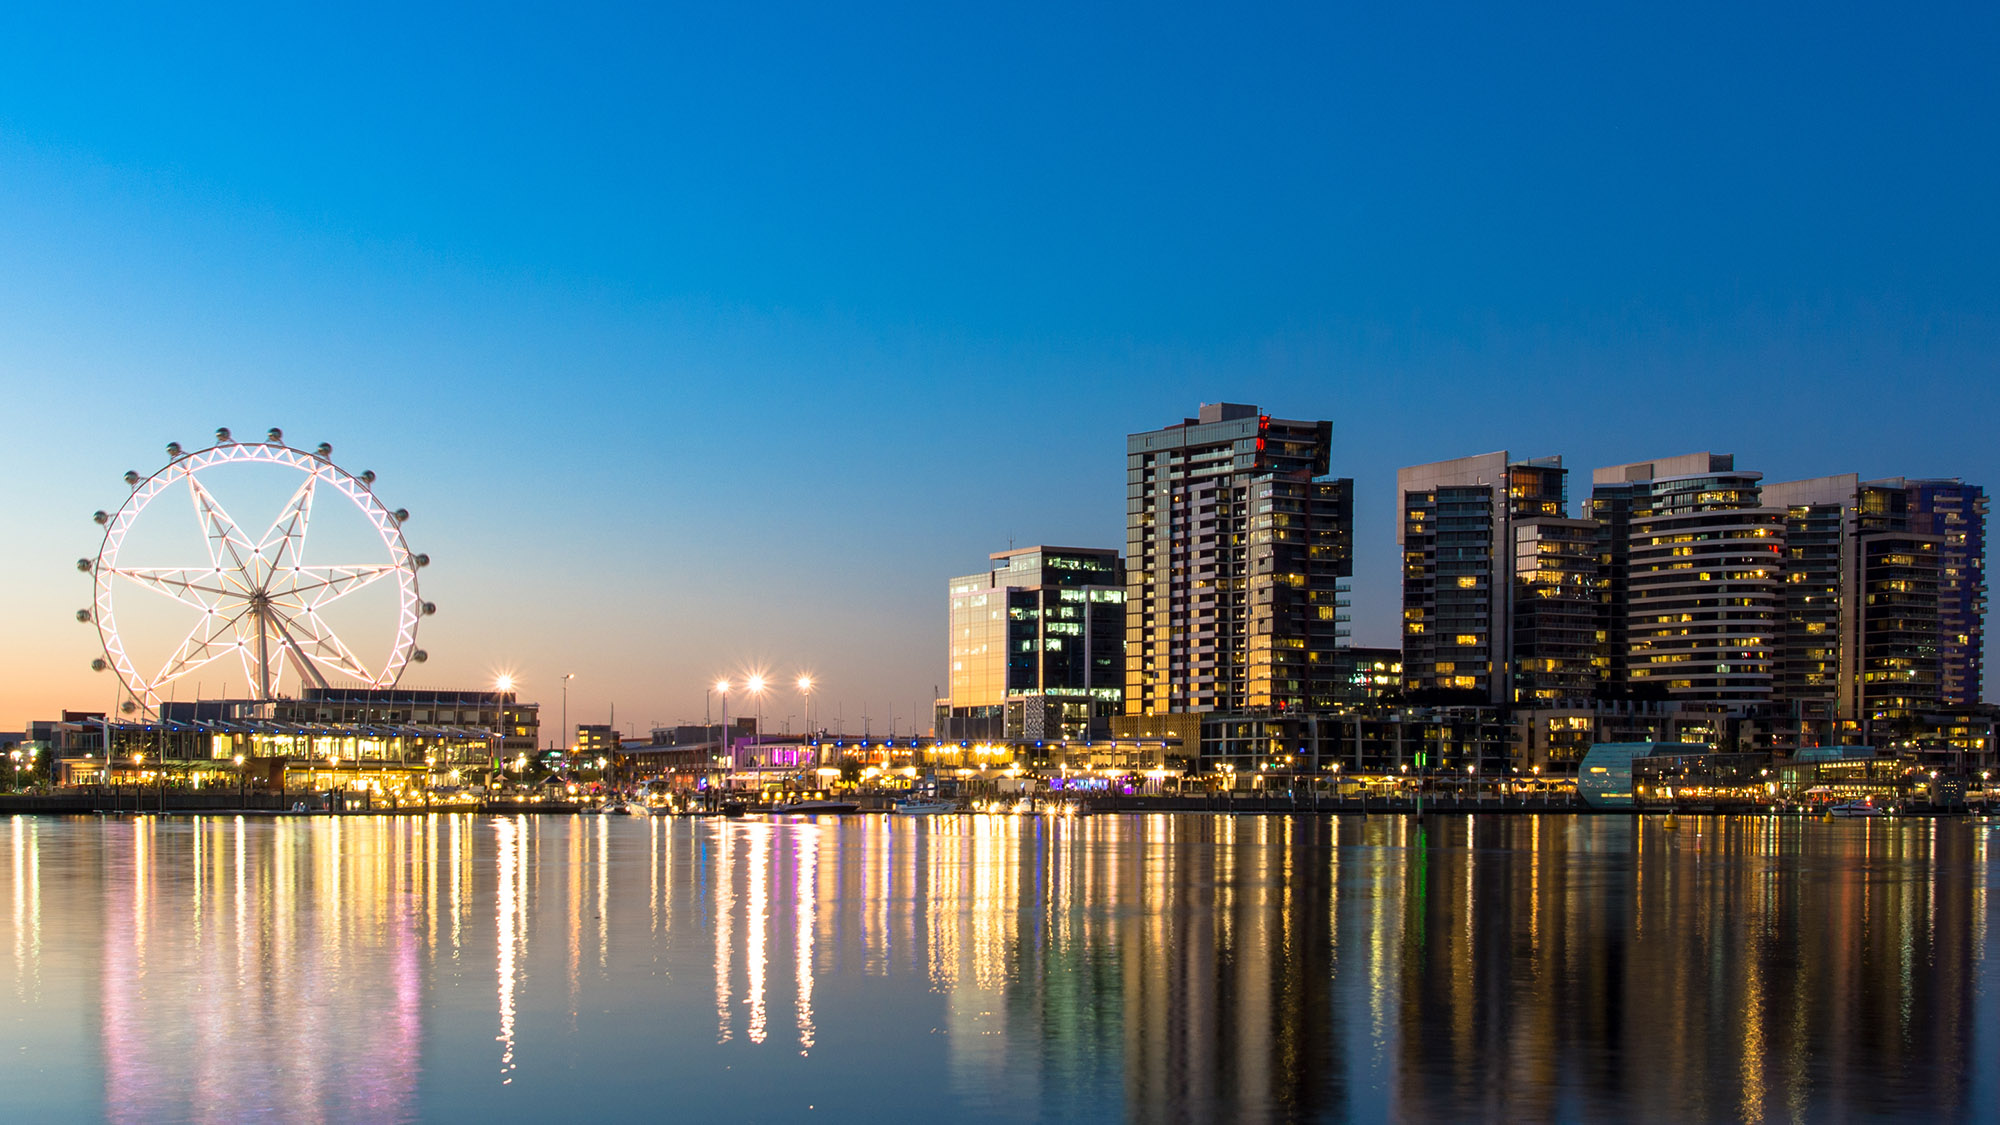 Melbourne named as Australia's top city to visit in 2015